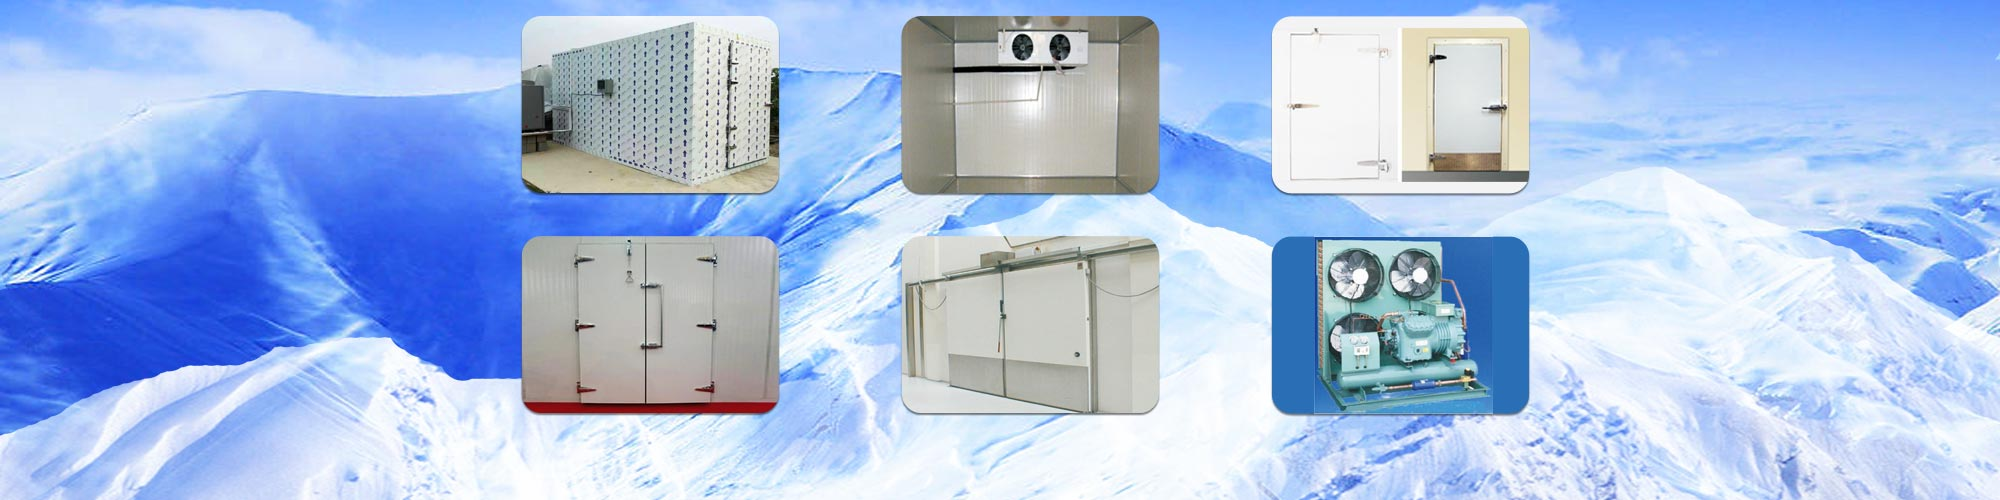 XUEYU Cold Room Products